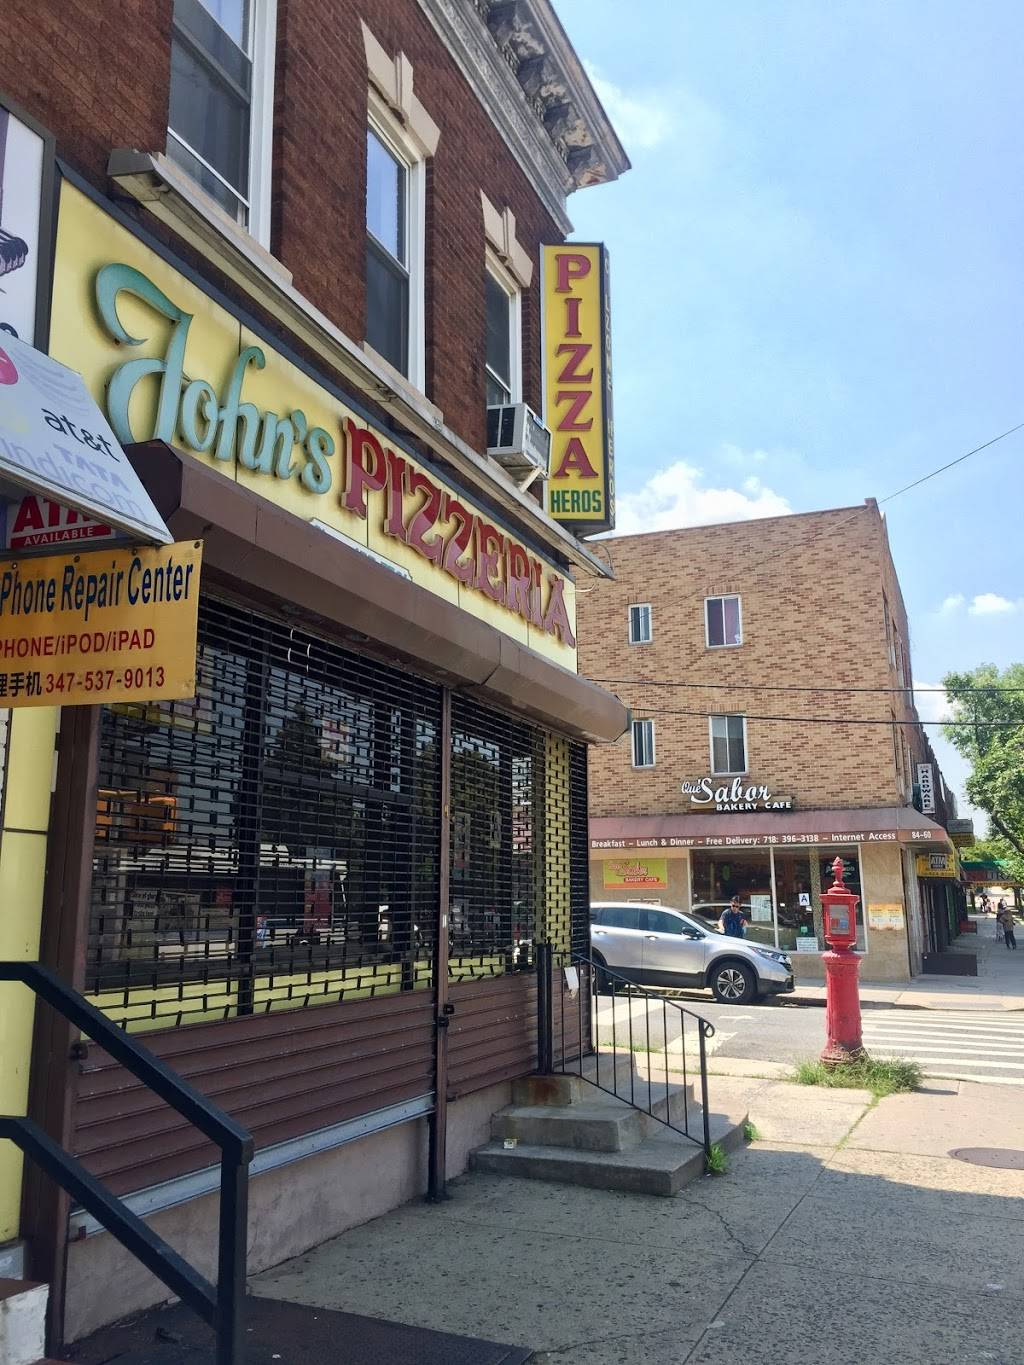 Johns Pizzeria | restaurant | 8502 Grand Ave, Elmhurst, NY 11373, USA | 7184577561 OR +1 718-457-7561